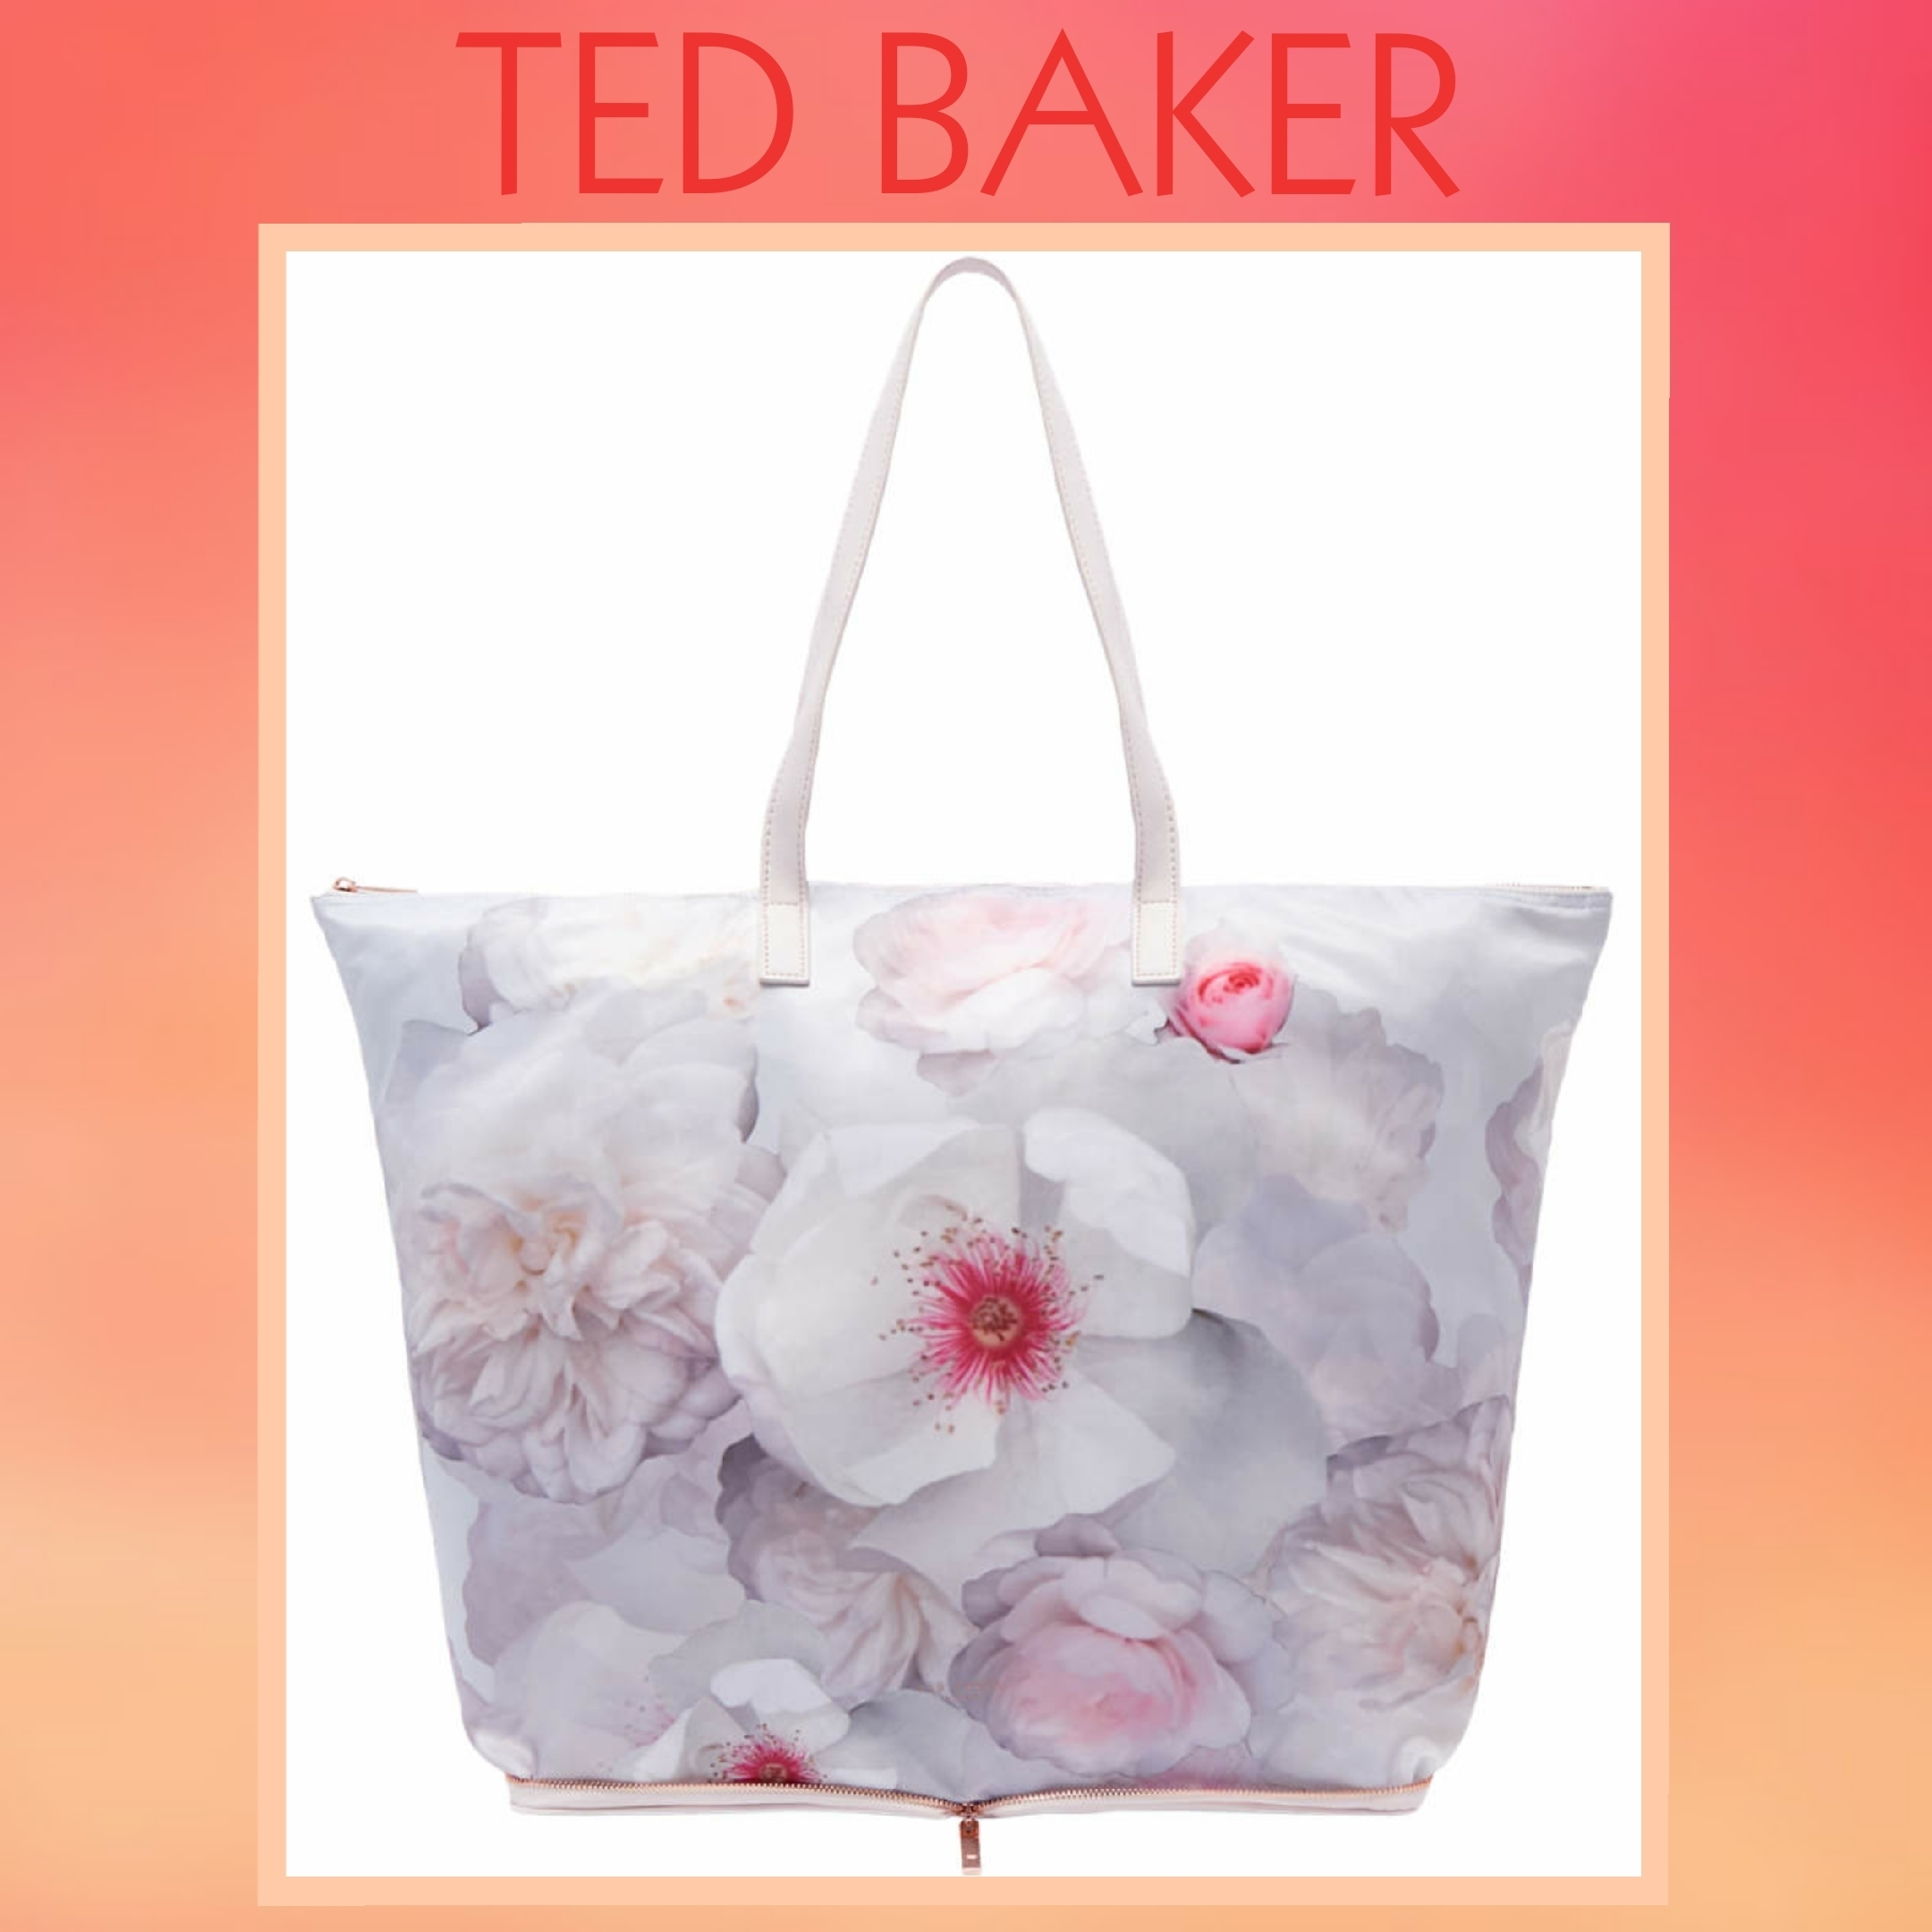 ★TED BAKER★折り畳み コンパクト ショッパー バッグ